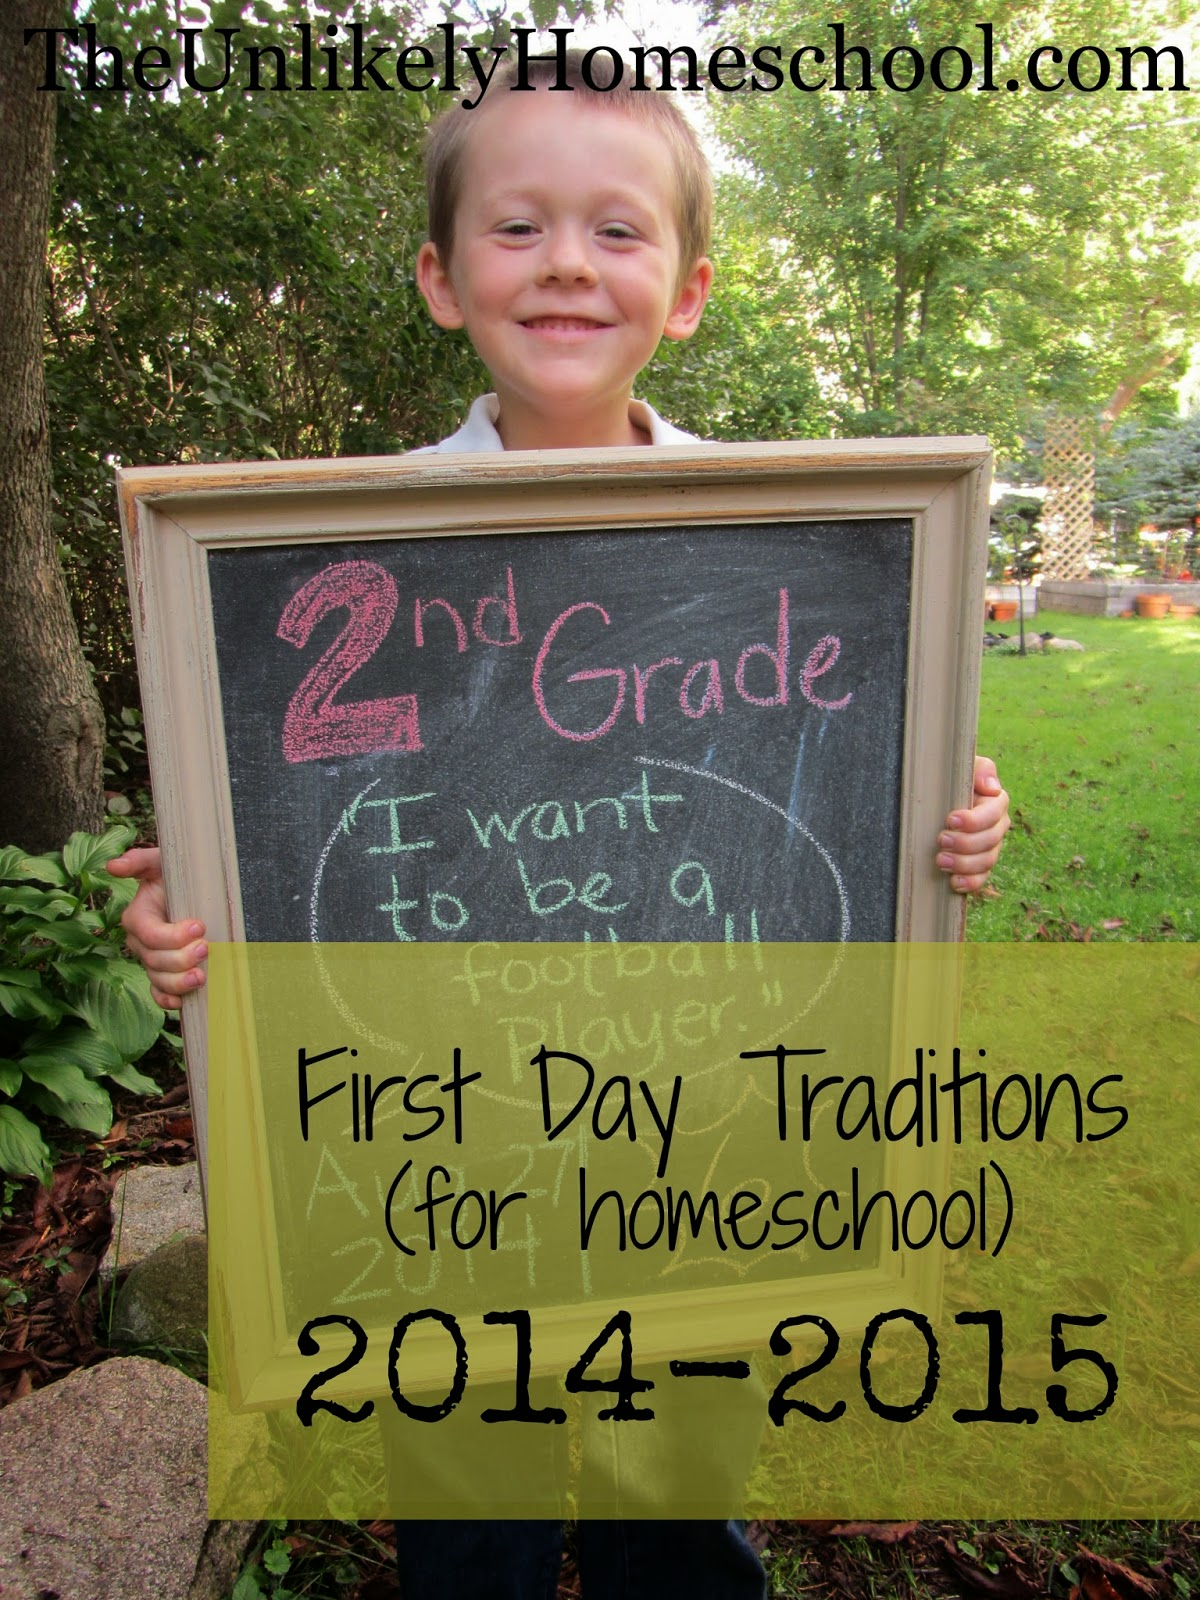 First Day Traditions (for homeschool) 2014-2015